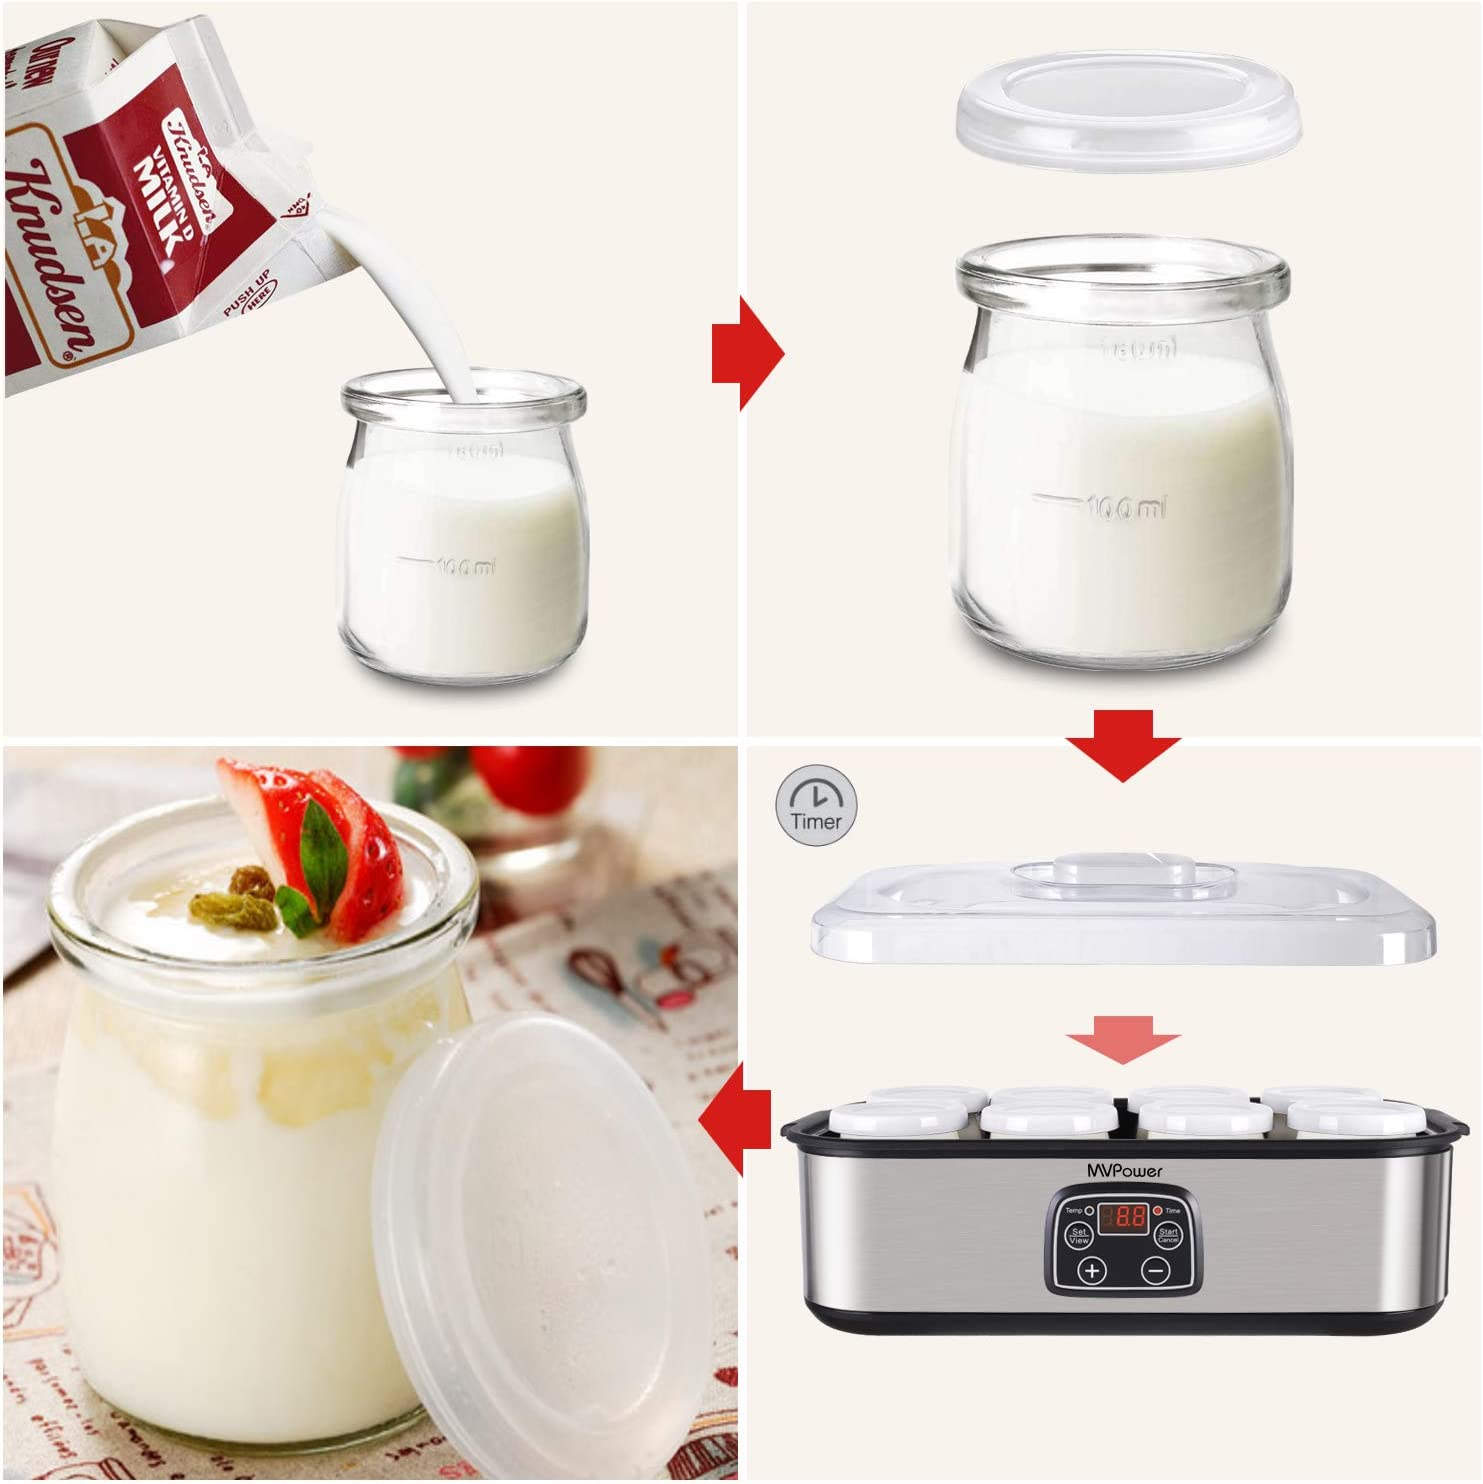 How to make Yogurt step by step : Best electric yogurt maker